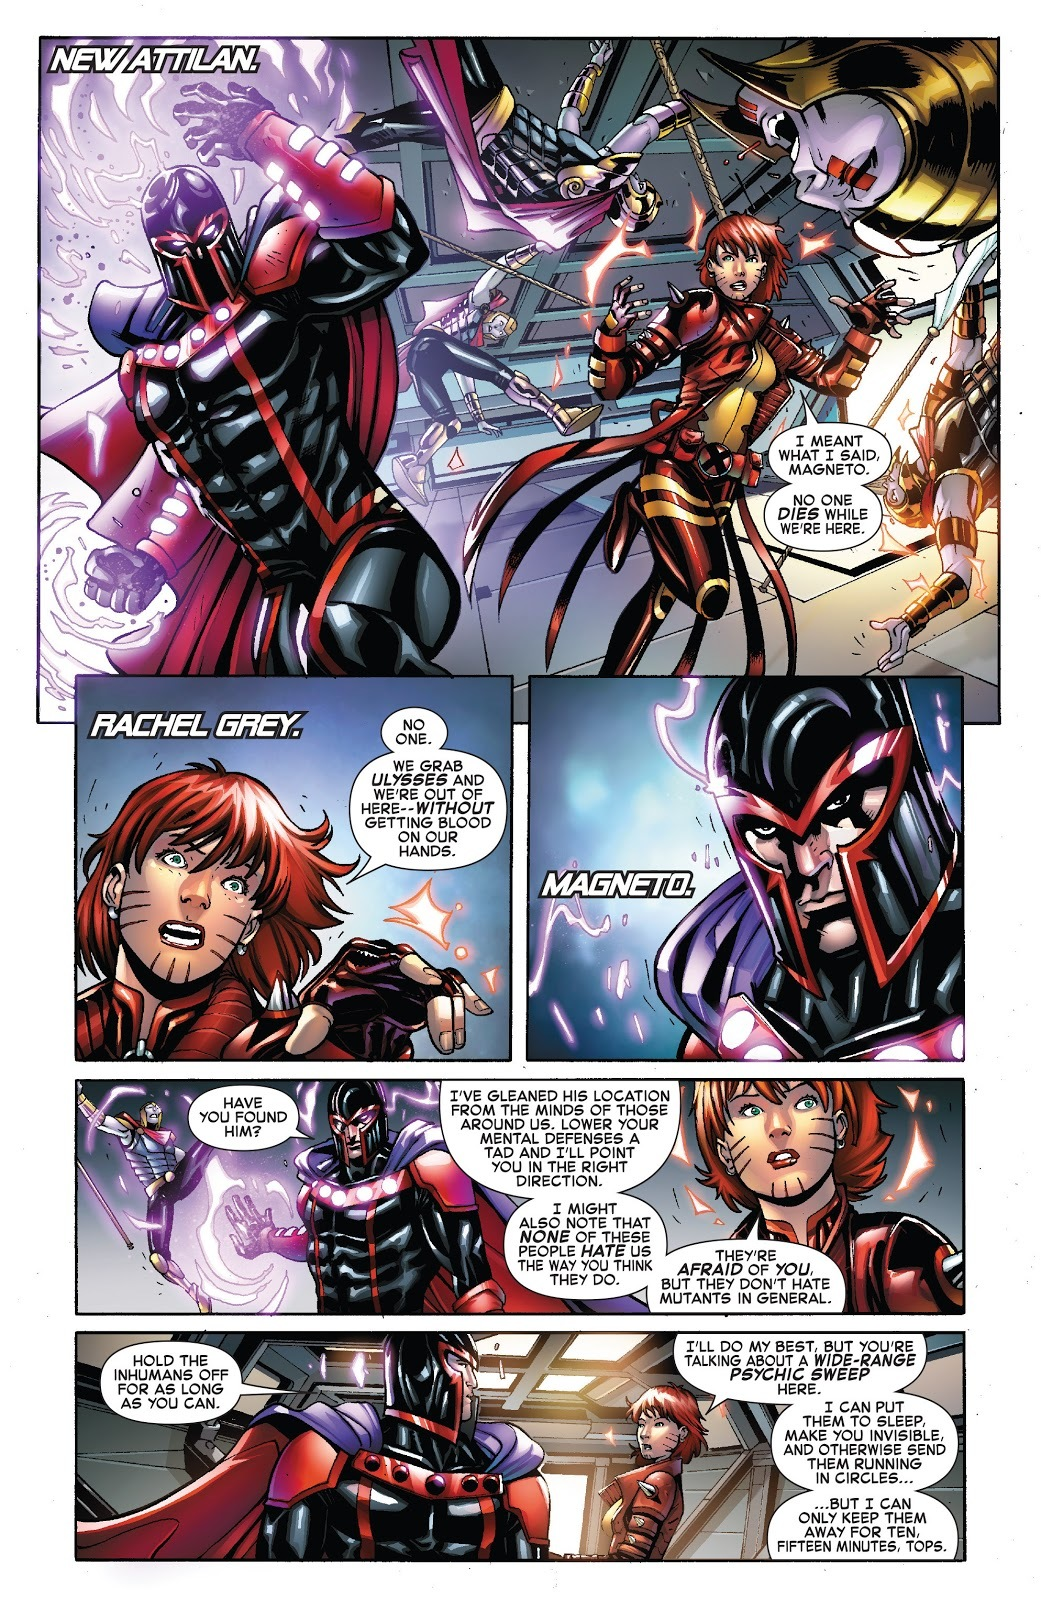 Can communicate with Magneto through his helmet - Civil War 2: X-Men Issue 4